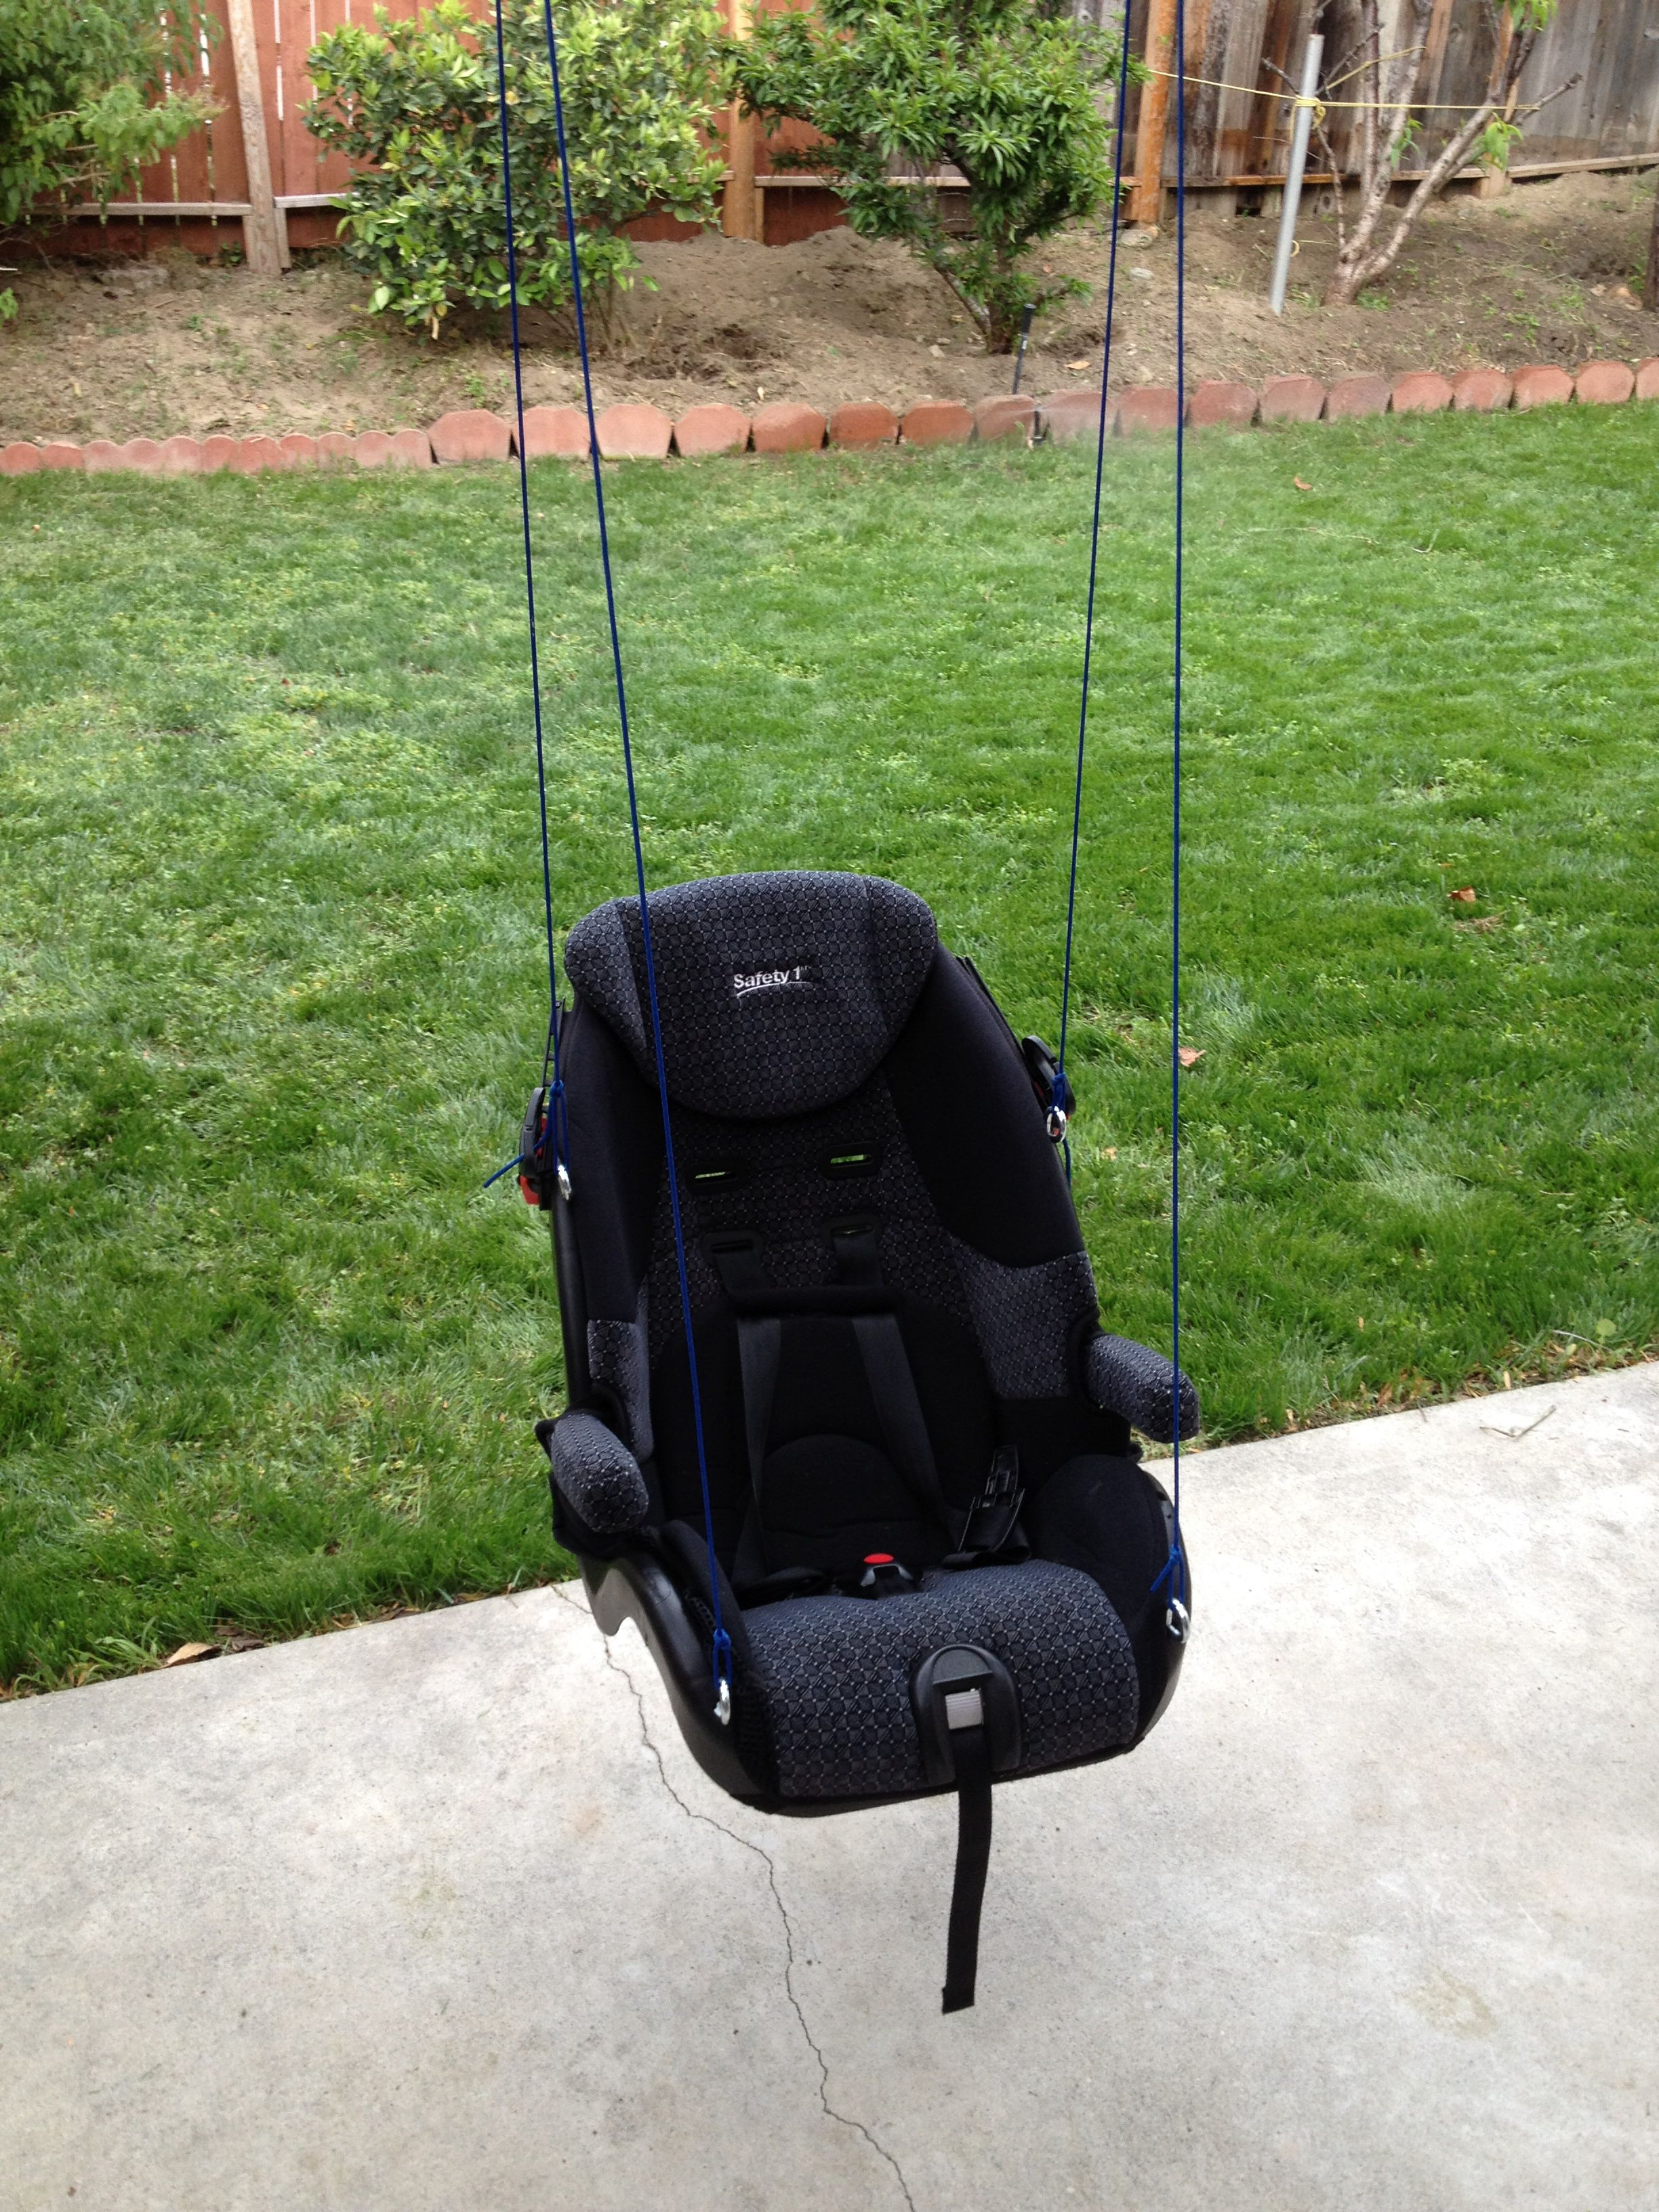 medium resolution of diy car seat upcycle diy baby swing outdoor awesome idea with 5 point harness